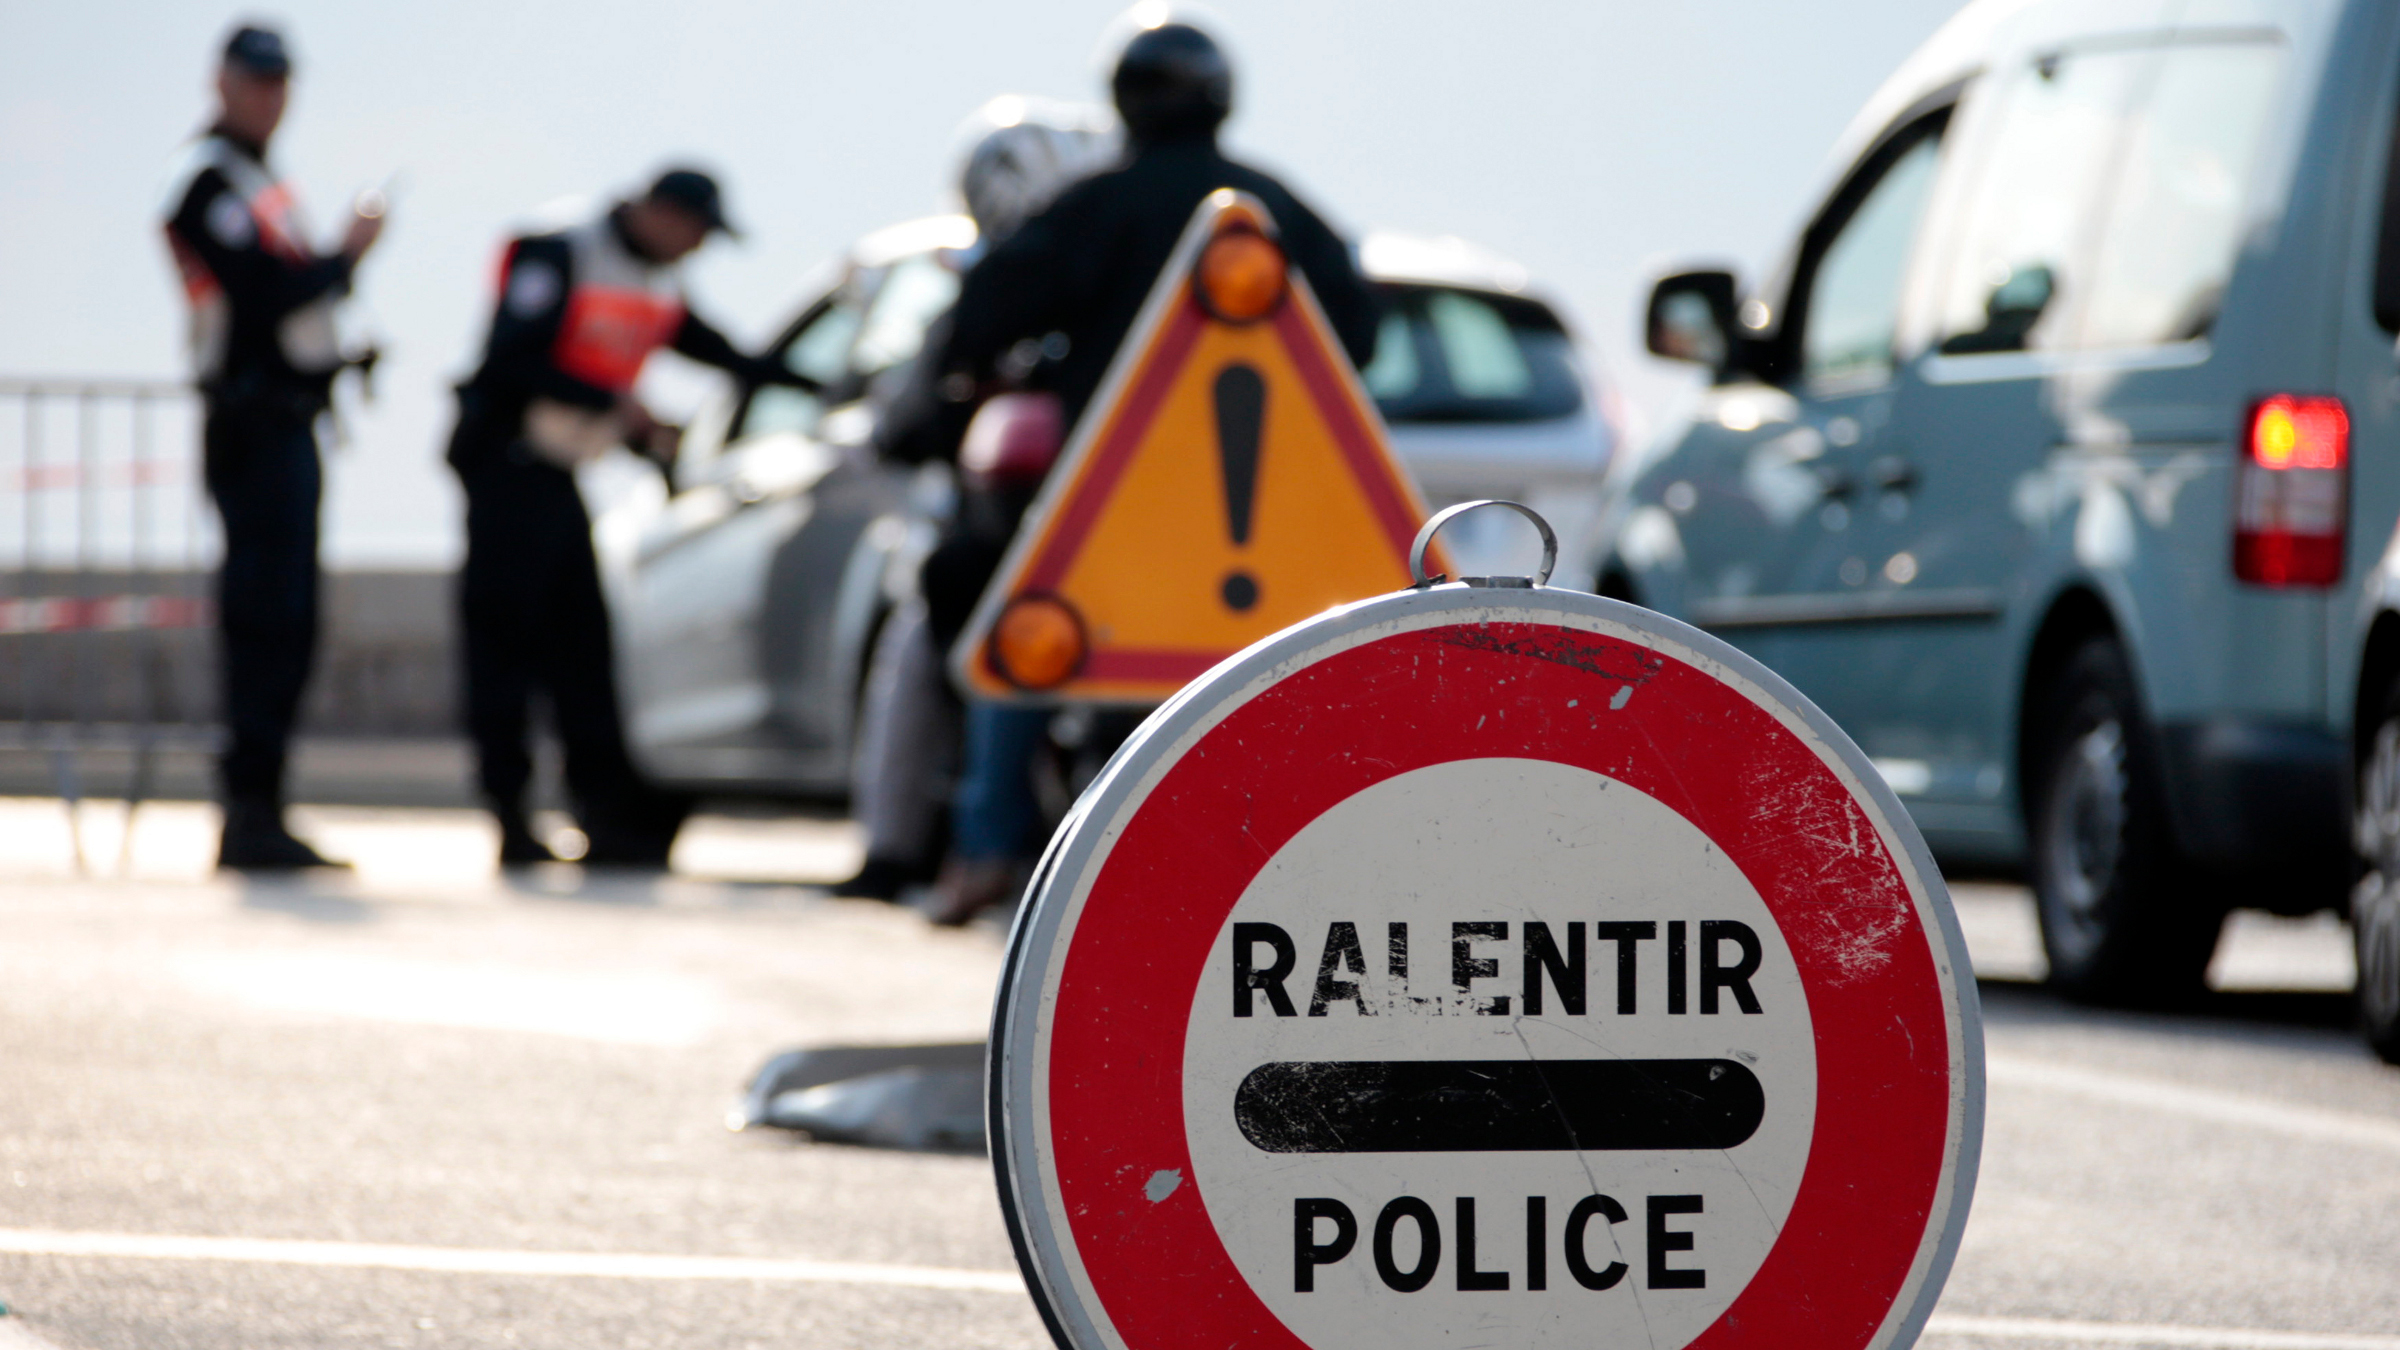 French police reactivate controls of vehicles and identity checks at the Franco-Italian border in Menton after a series of deadly attacks in Paris, France, November 14, 2015.